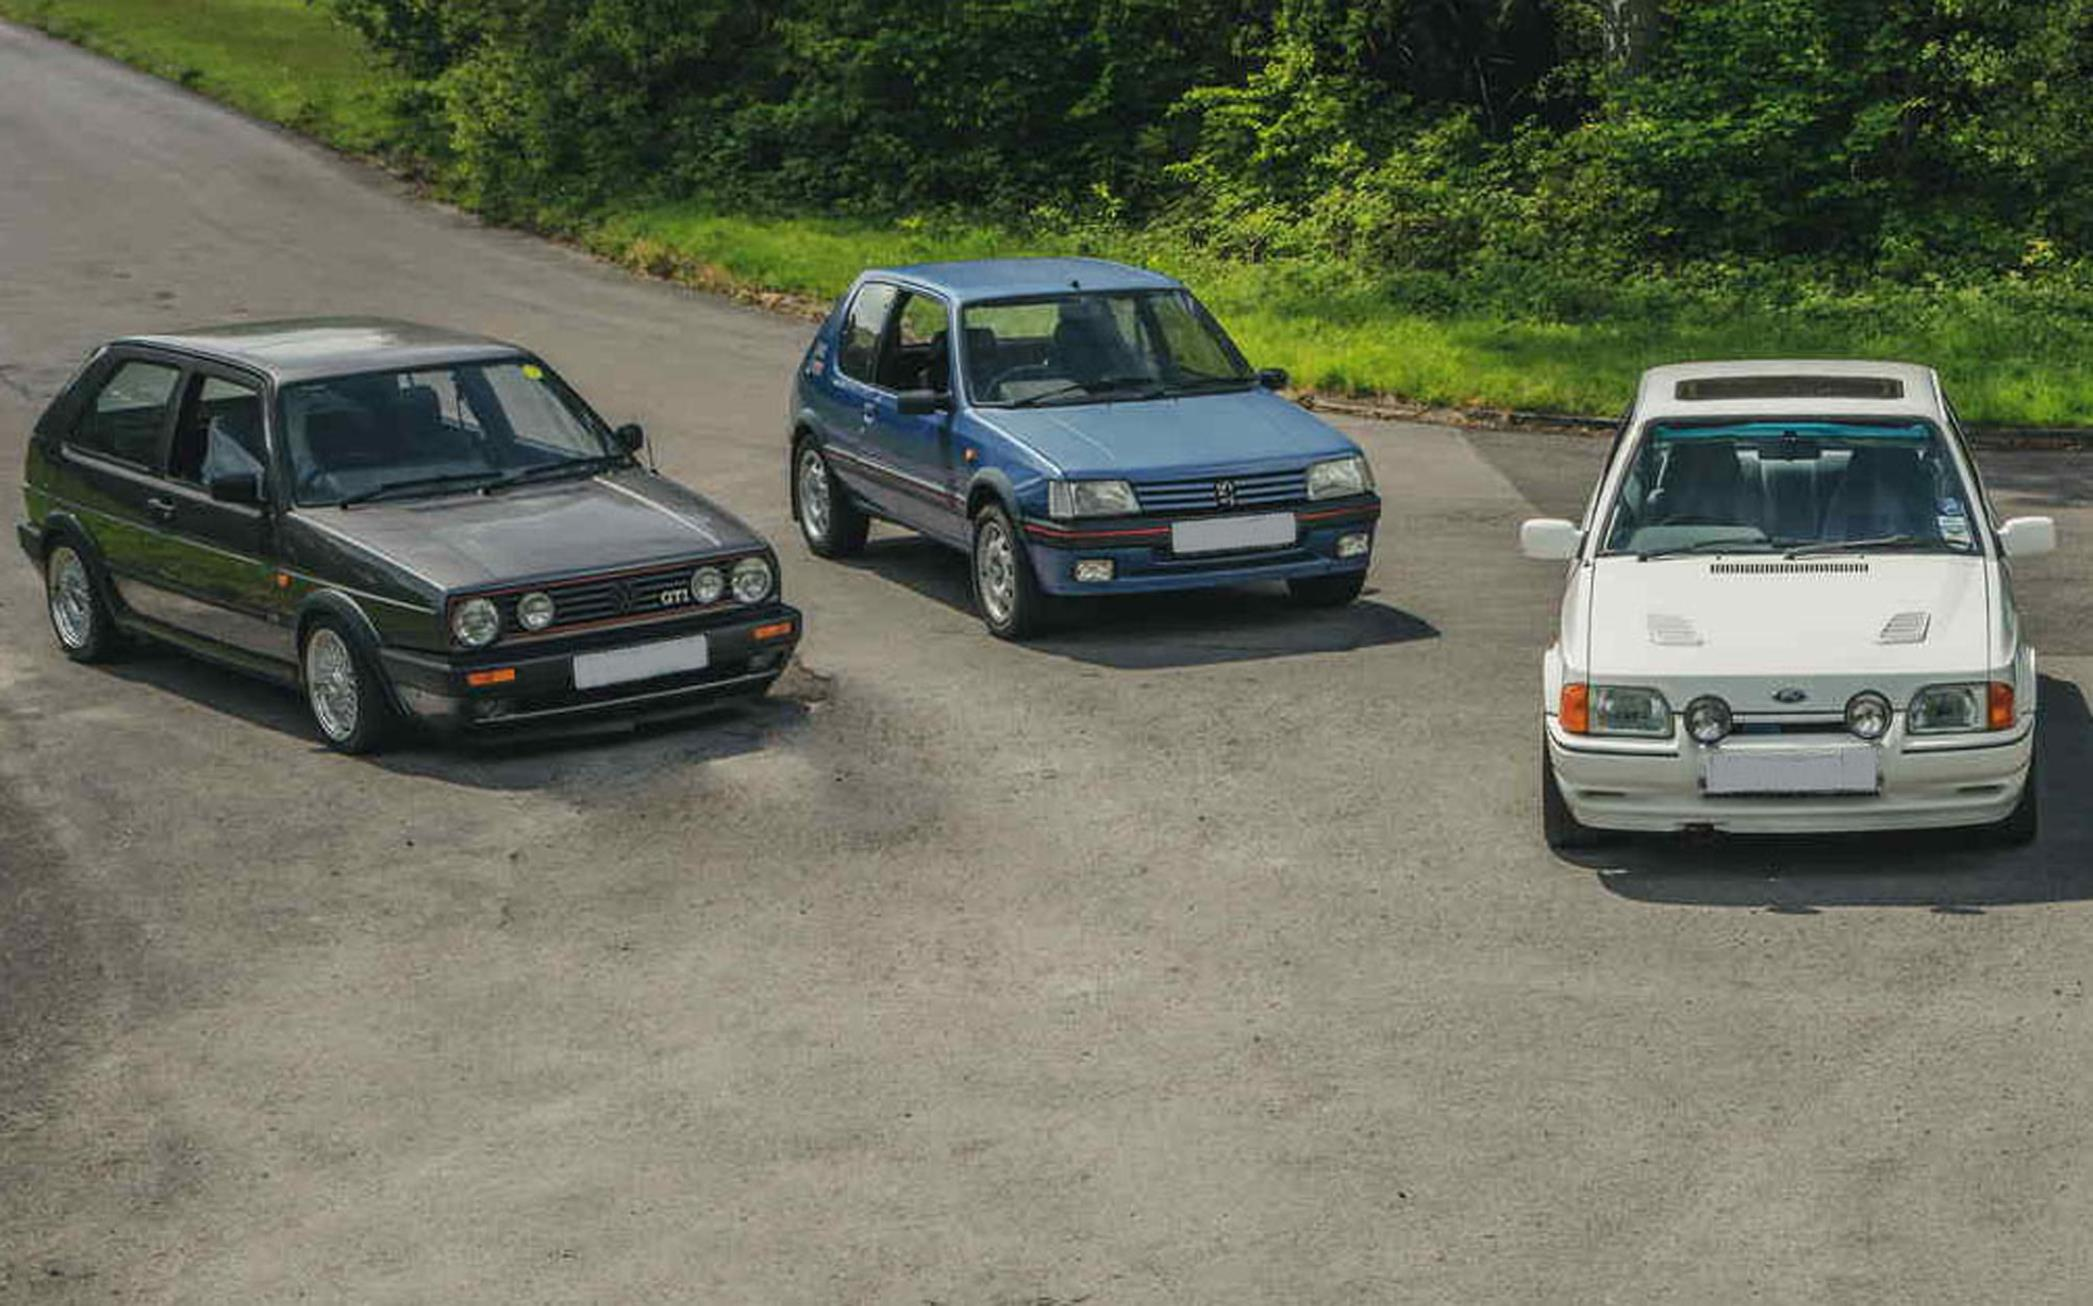 1980's hot hatches are hotter than modern supercars